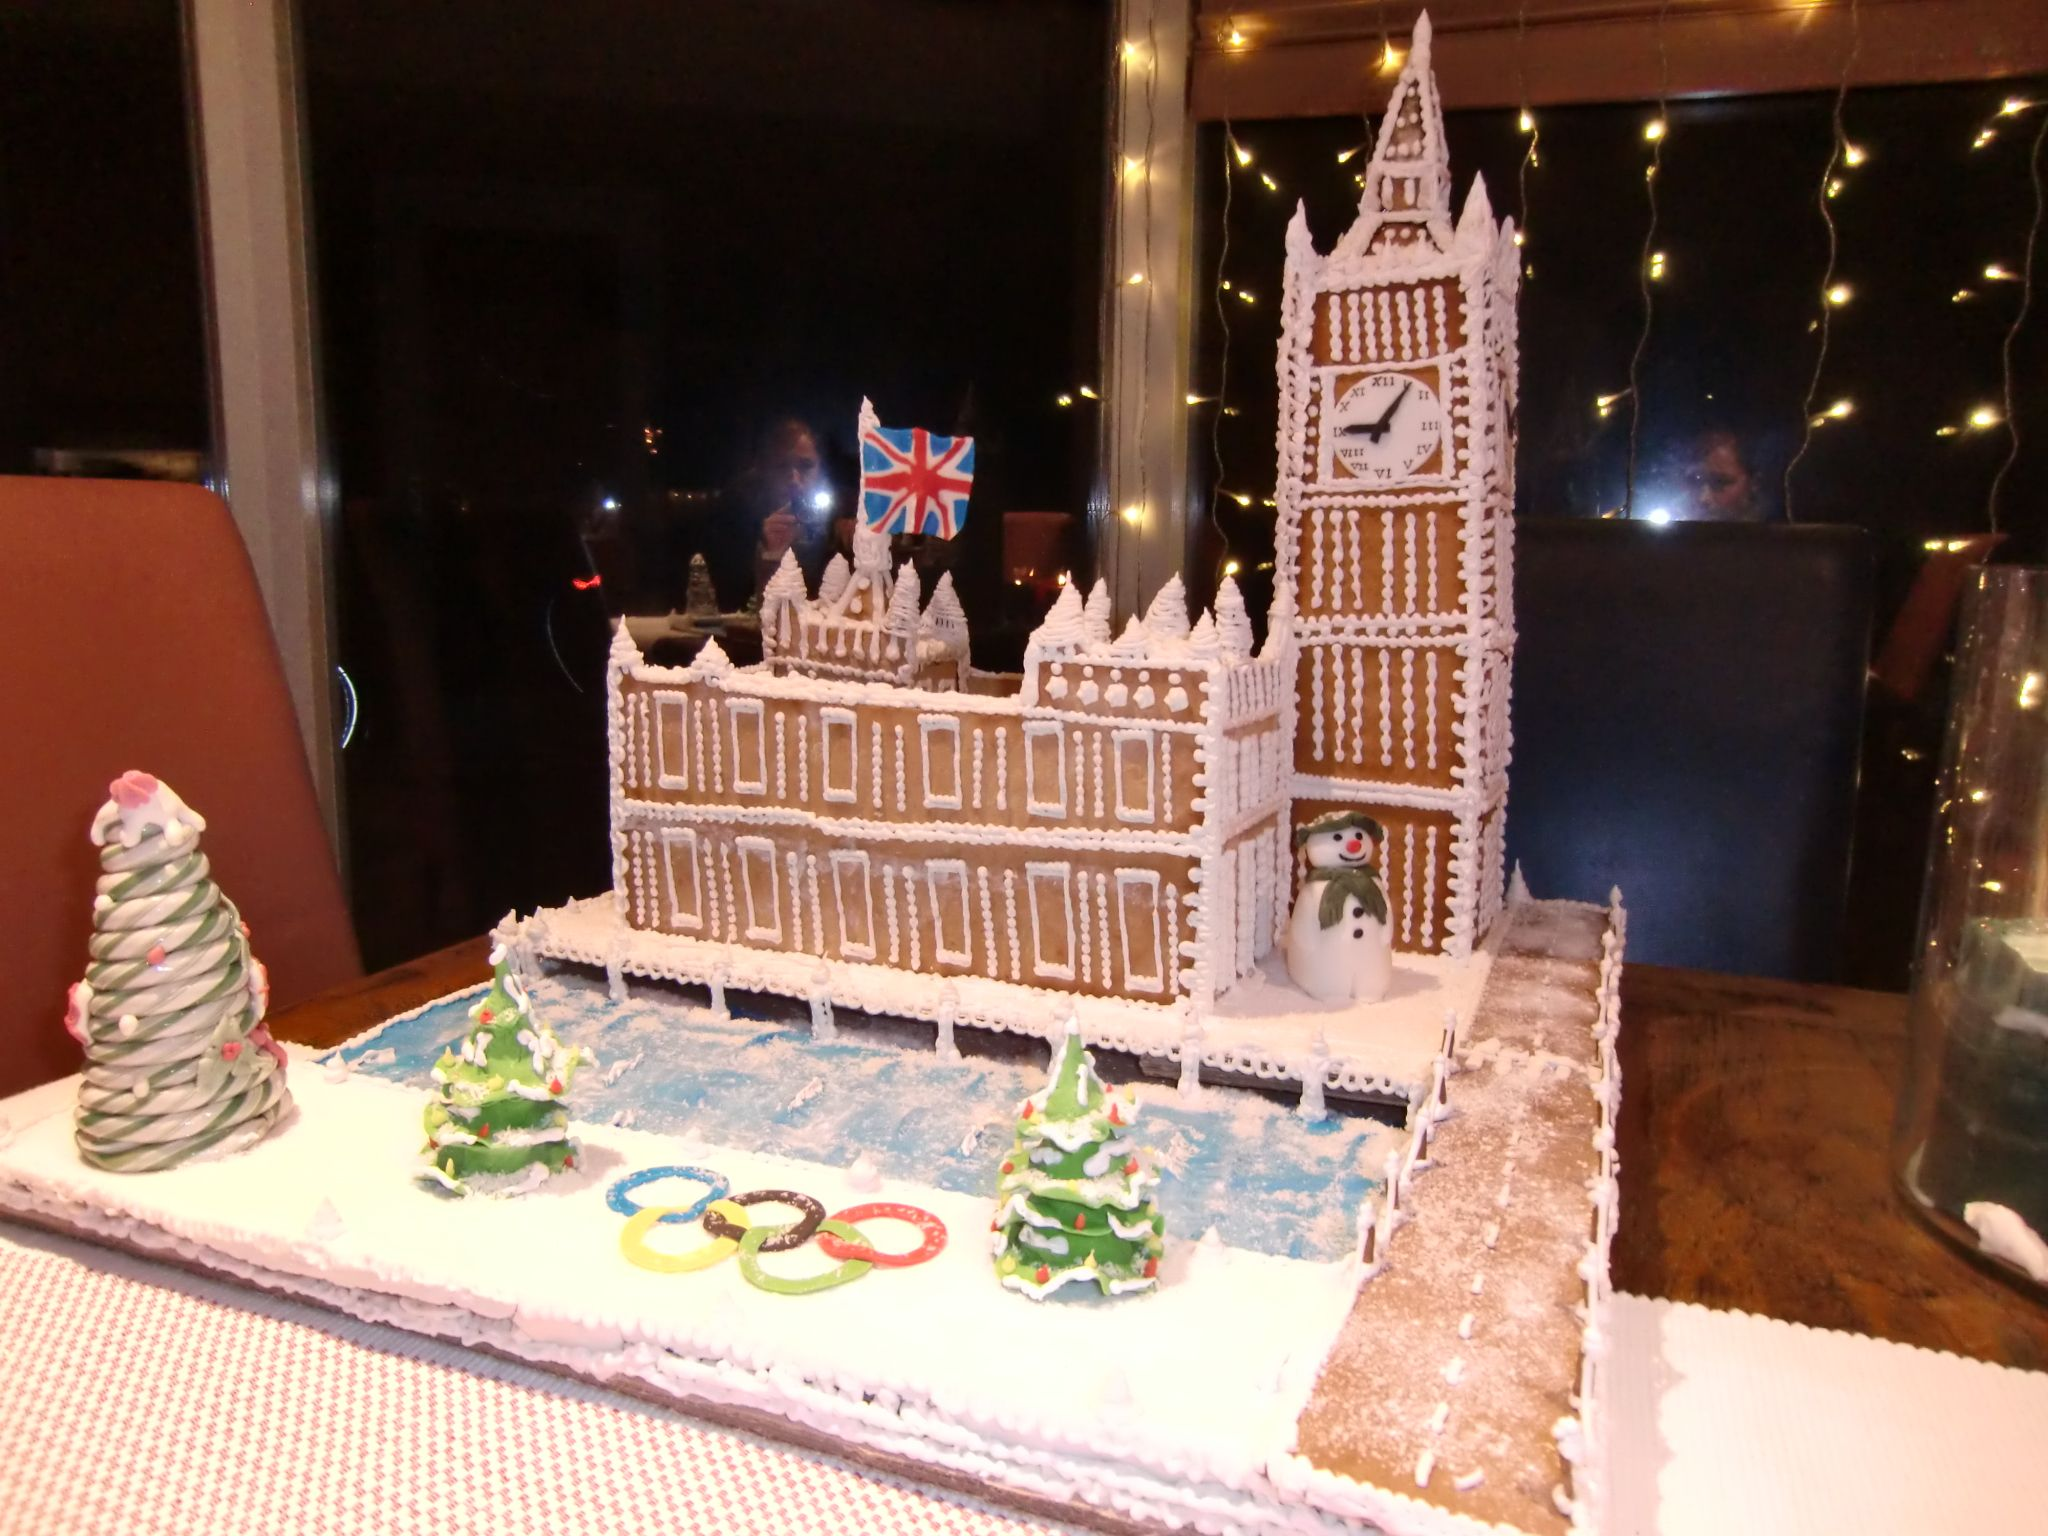 Pin By Lori O Connell On Cake Ideas Christmas Gingerbread House Gingerbread House Gingerbread Party